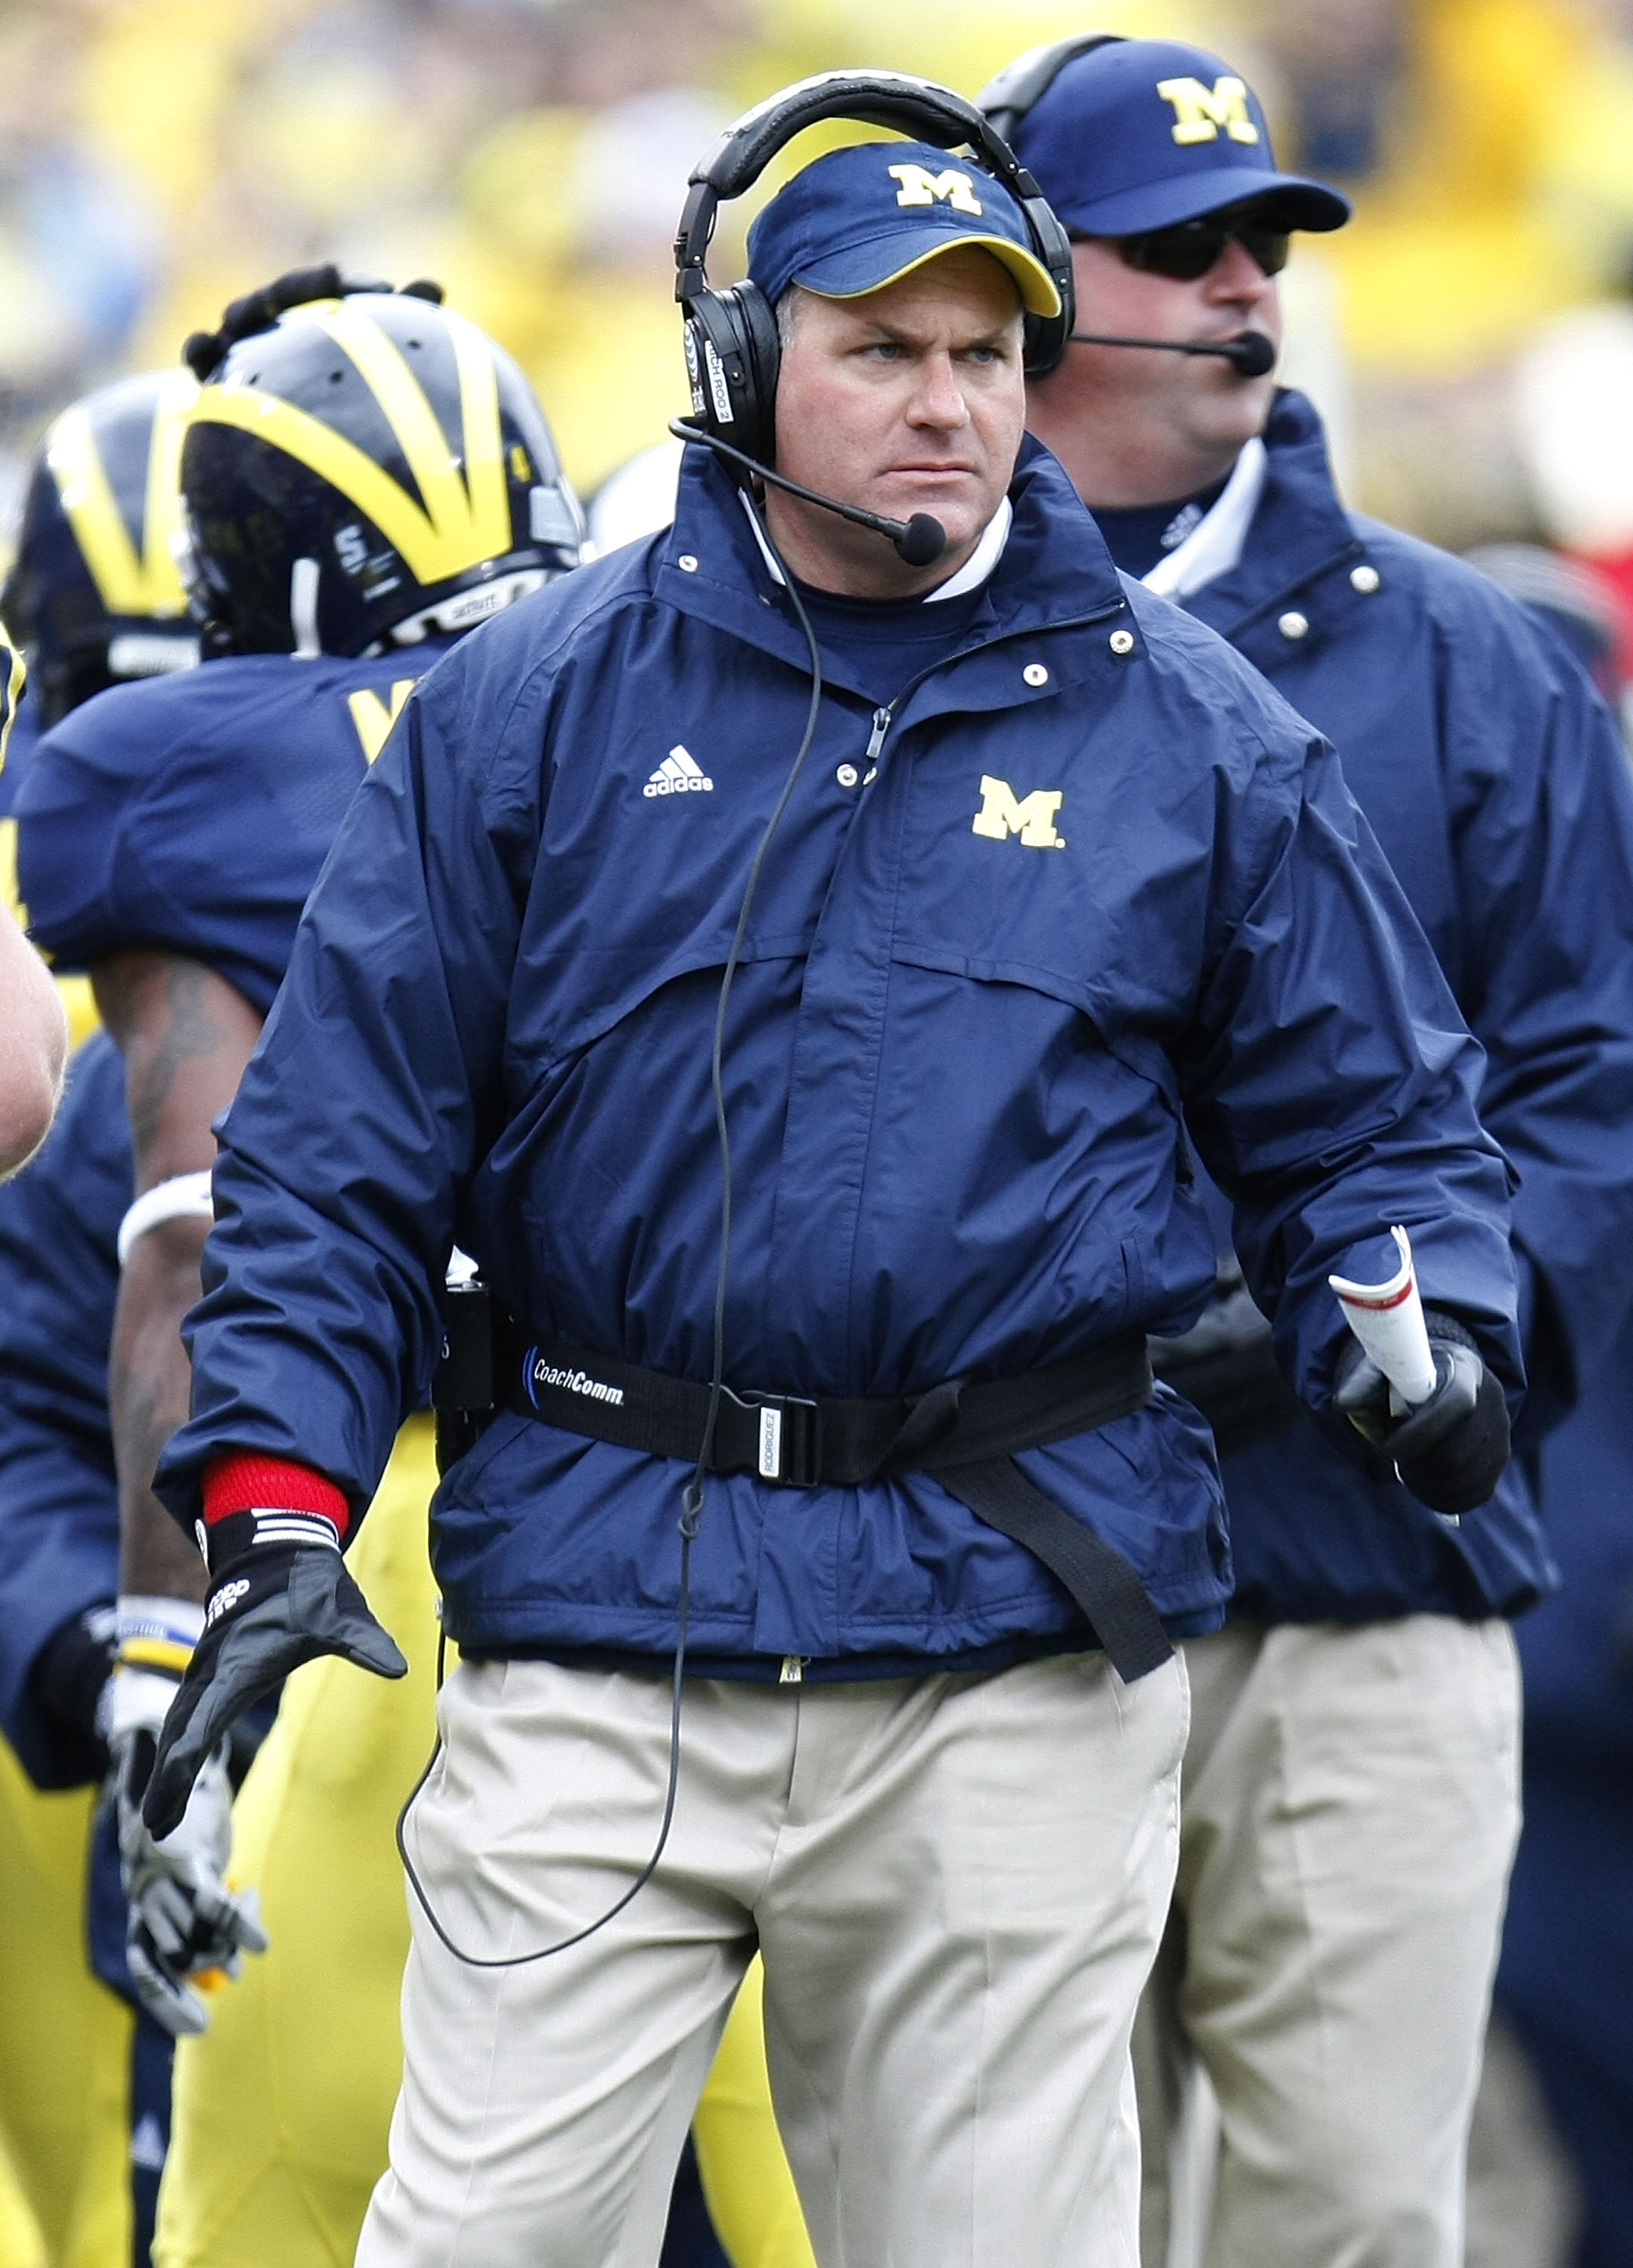 ANN ARBOR, MI - OCTOBER 24:  Head Coach Rich Rodriguez of the Michigan Wolverines looks on while playing the Penn State Nittany Lions on October 24, 2009 at Michigan Stadium in Ann Arbor, Michigan. Penn State won the game 35-10.  (Photo by Gregory Shamus/